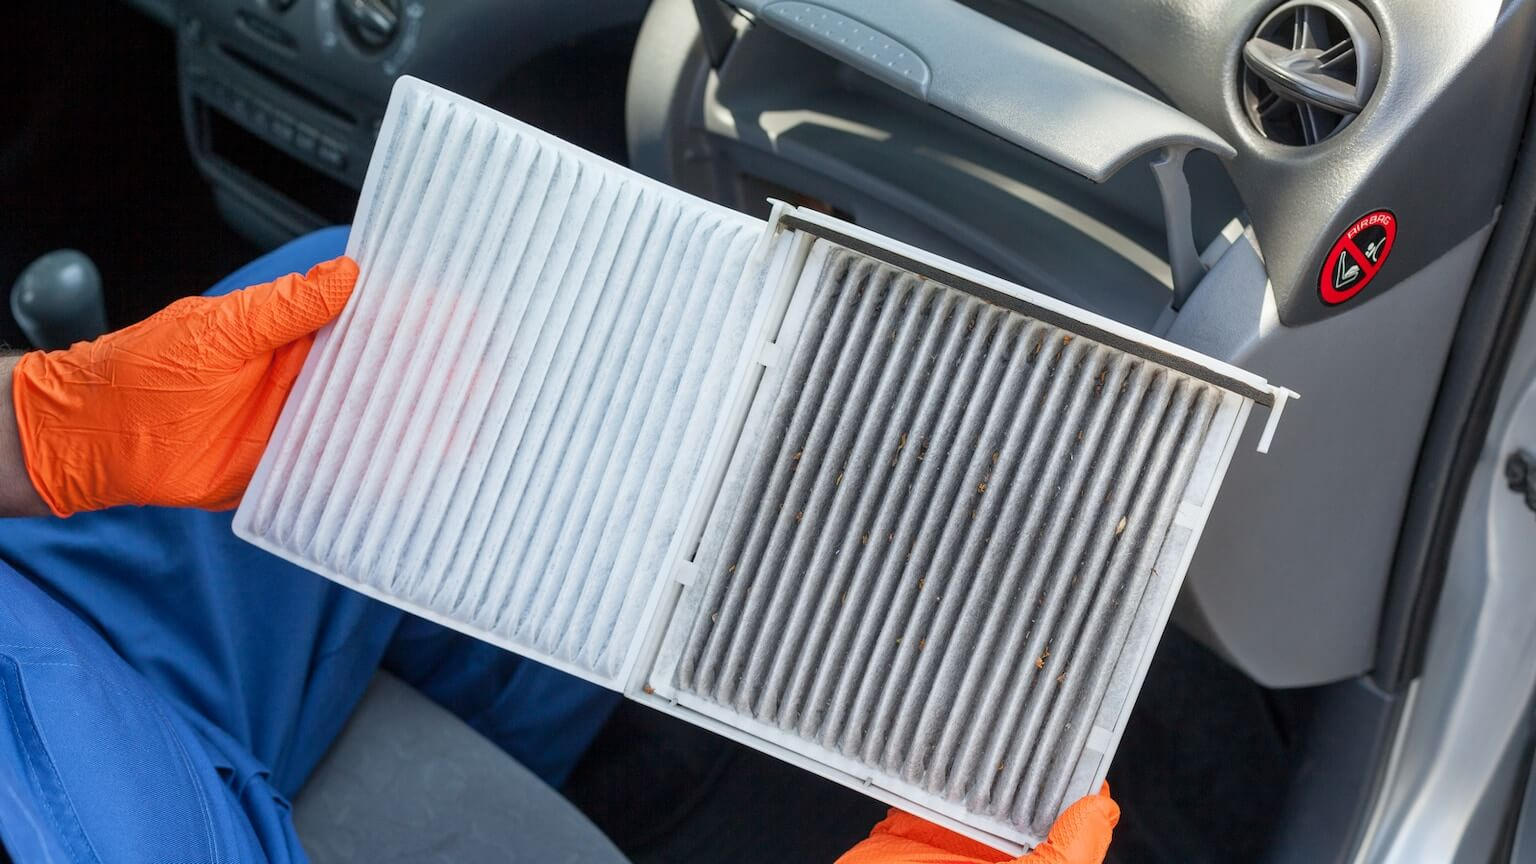 Save $15.00 on Filter Service